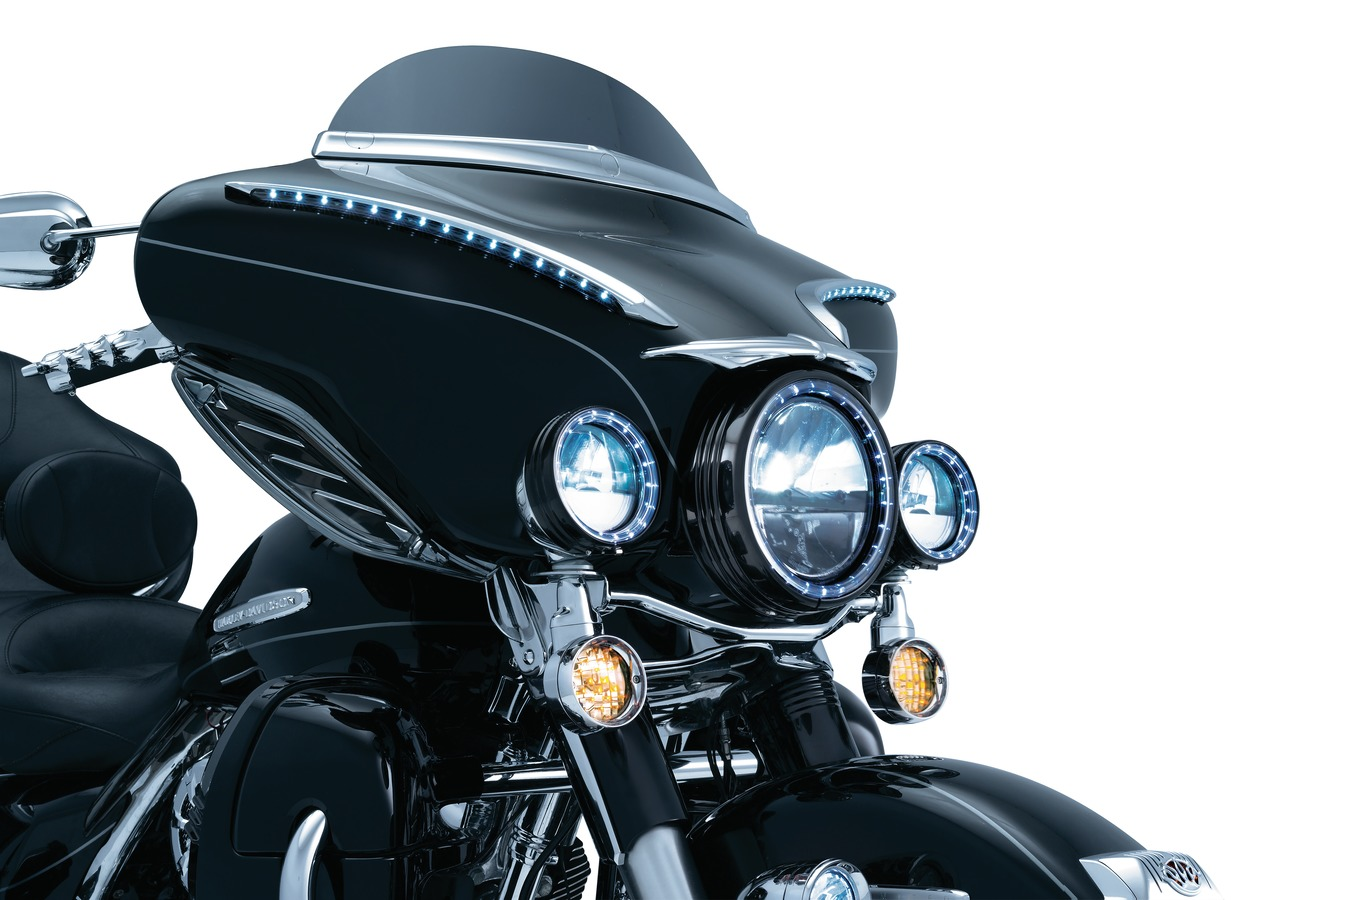 Batwing Fairing Yamaha Royal Star